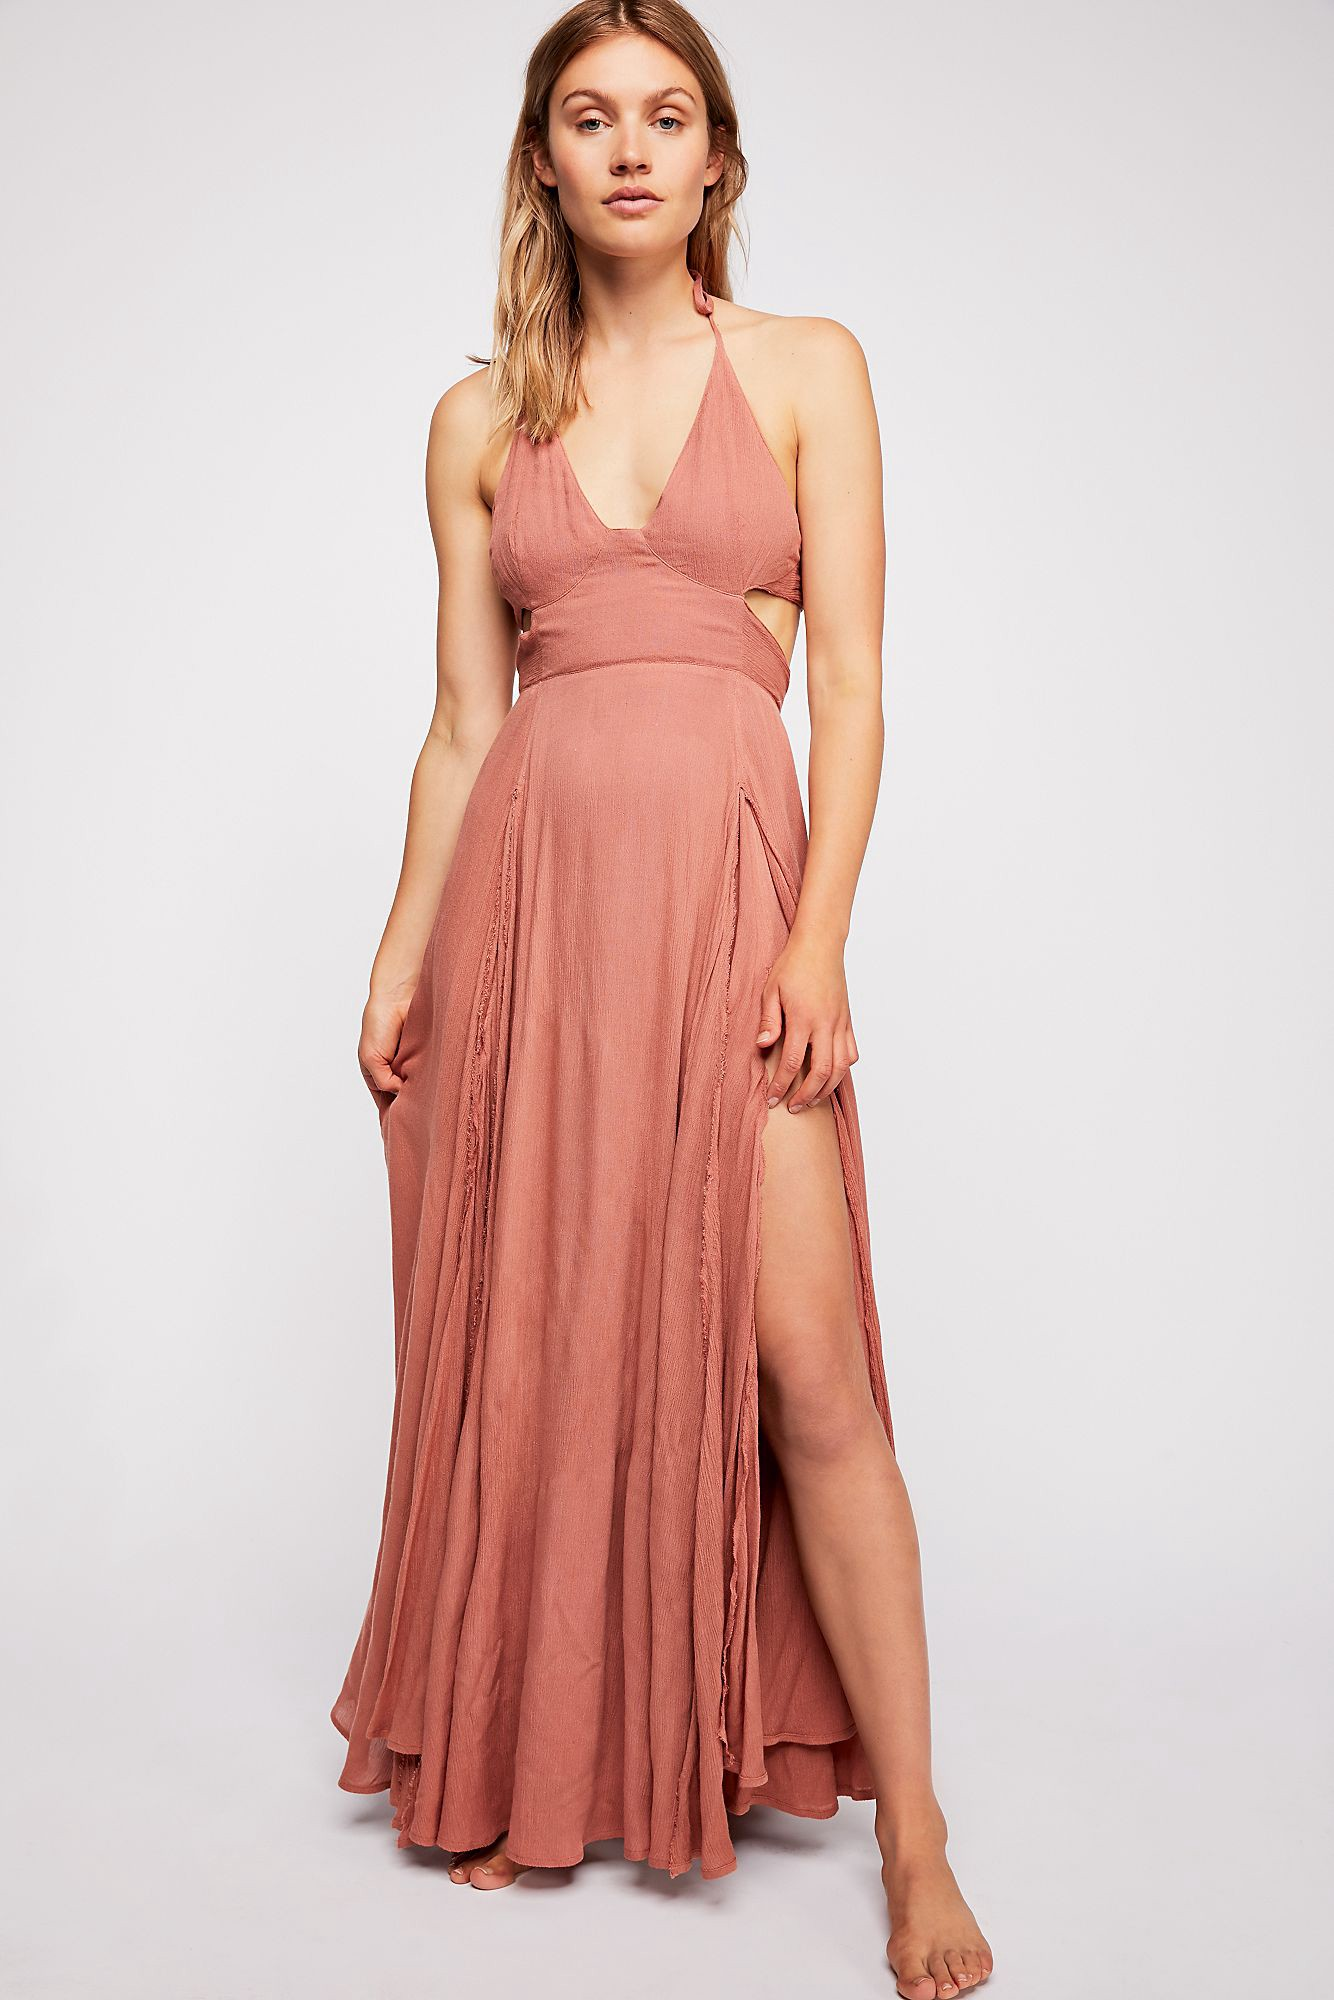 7a03057a8d4 Free People Lille Maxi Dress - Summer Bronze Xs